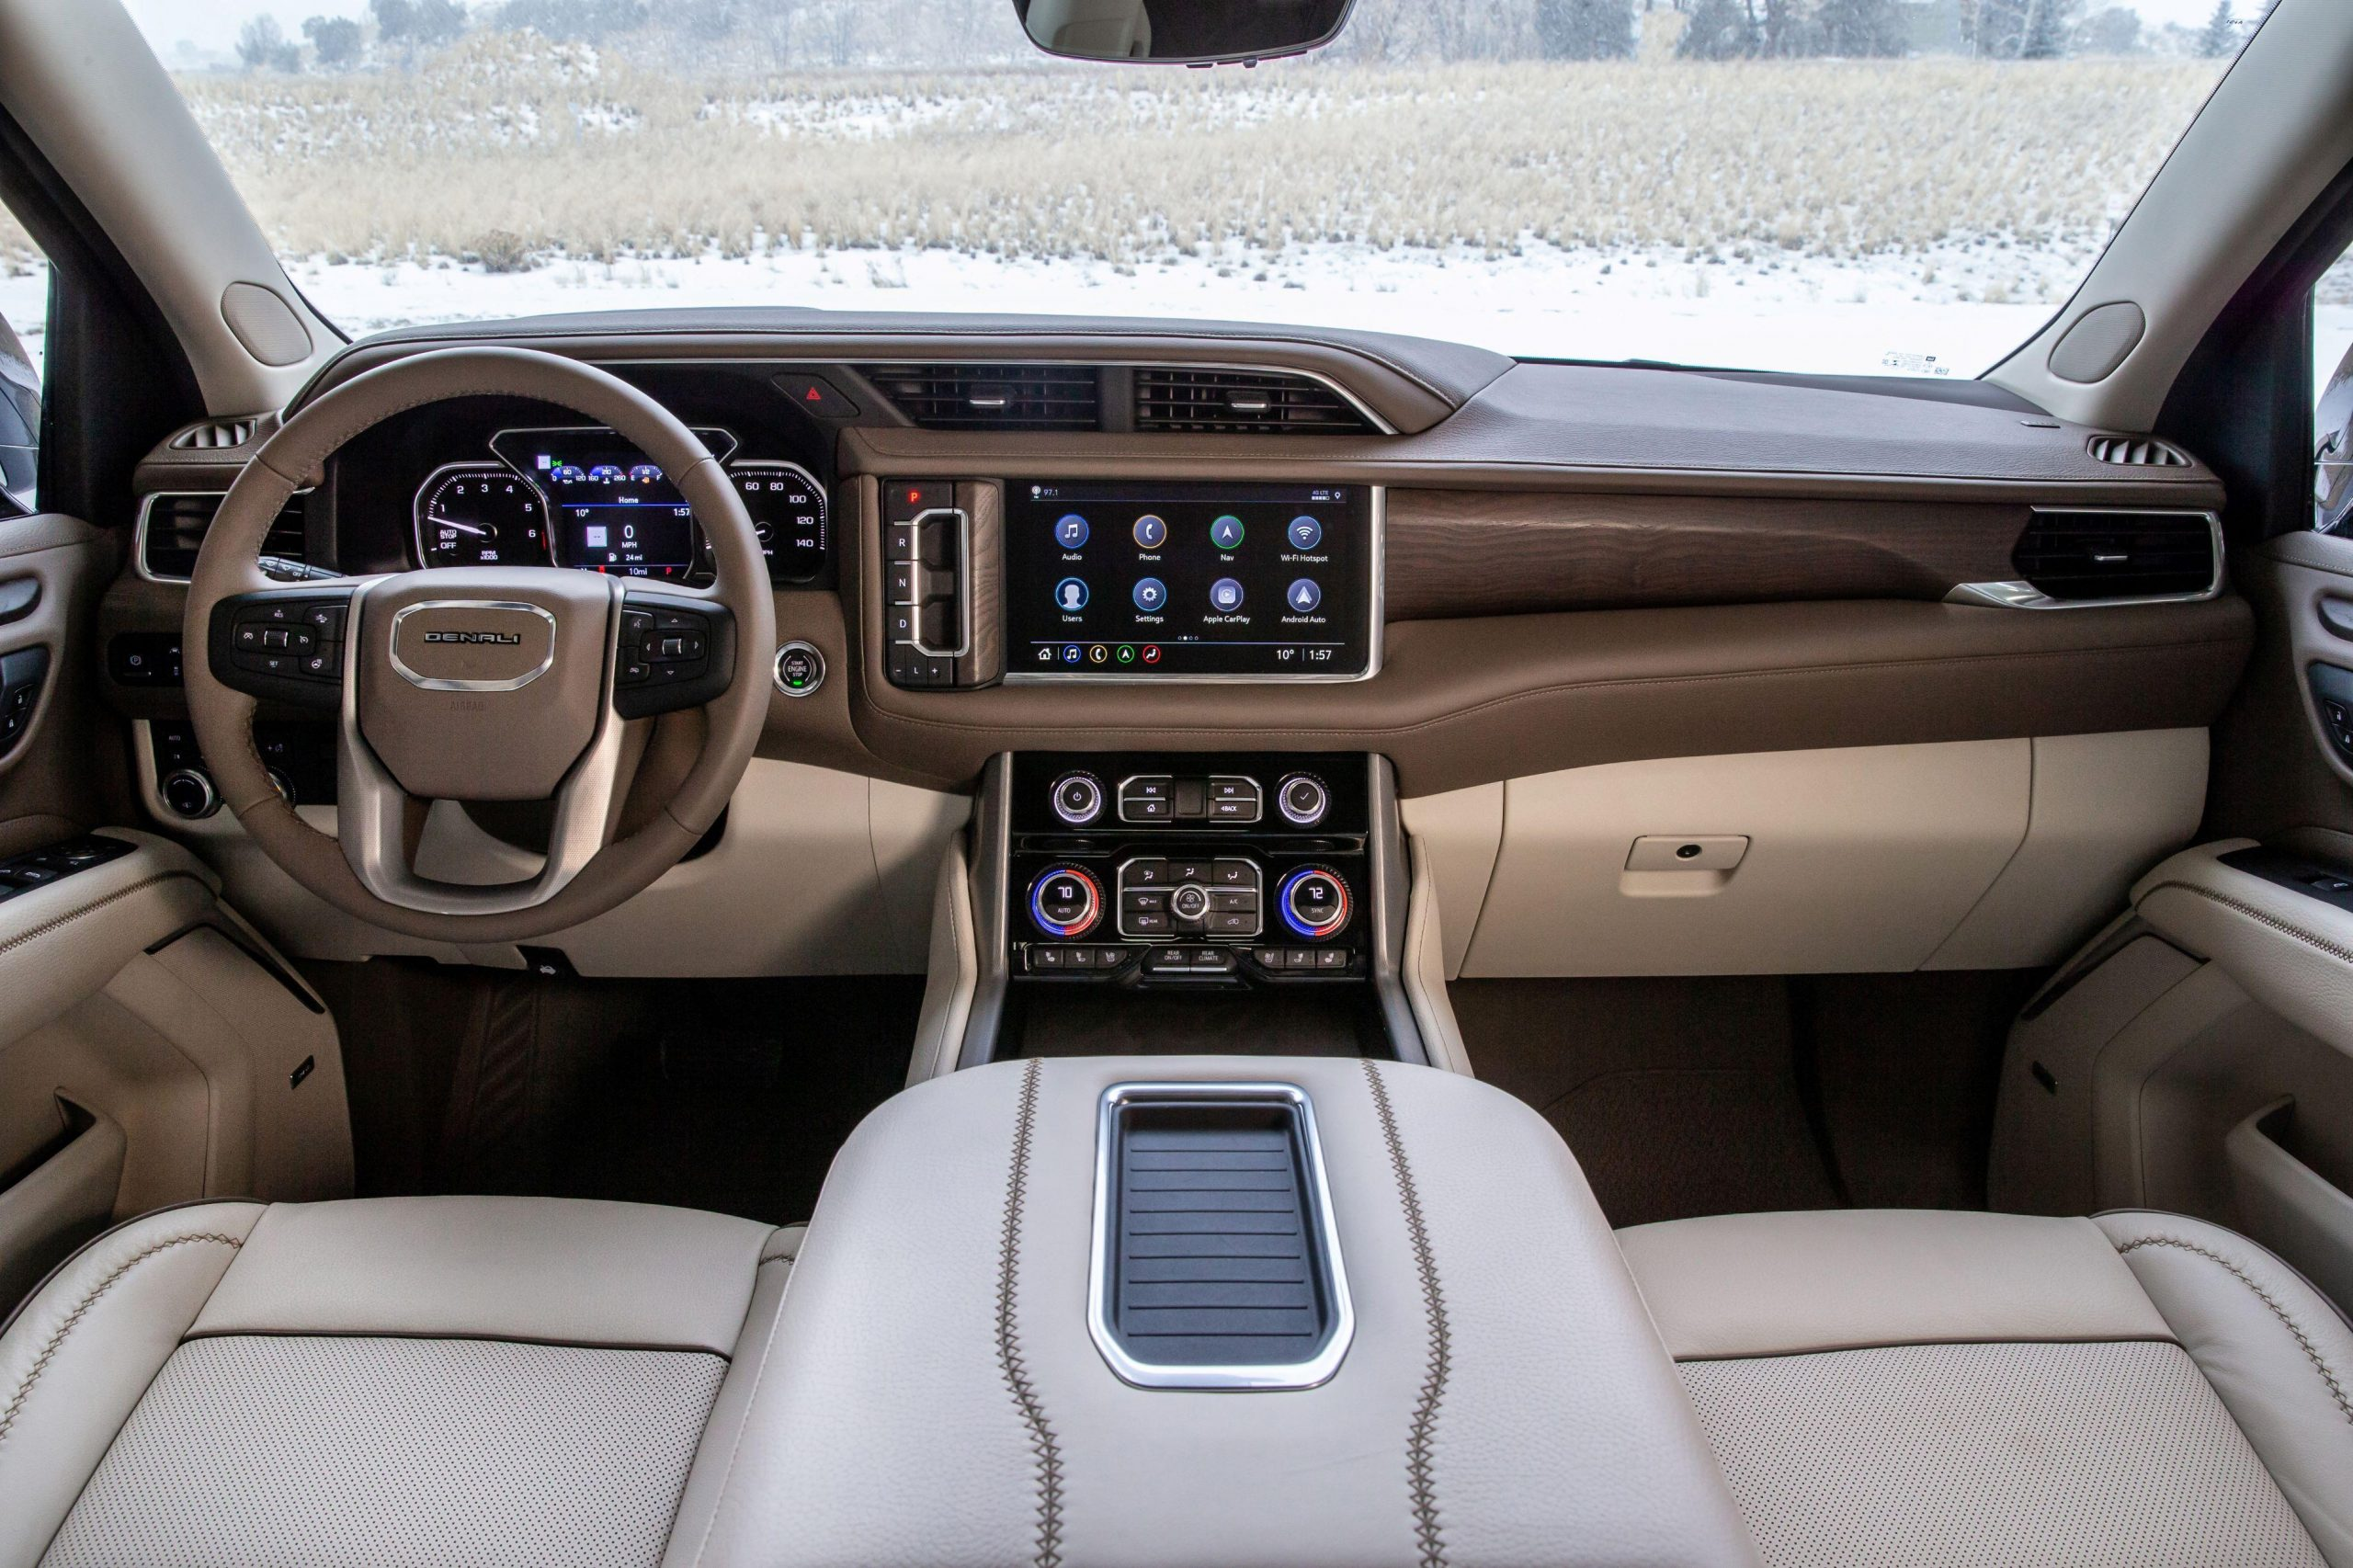 Walser Buick Gmc Of Bloomington Is A Bloomington Buick, Gmc New 2021 Buick Enclave Interior Colors, Heads Up Display, Incentives